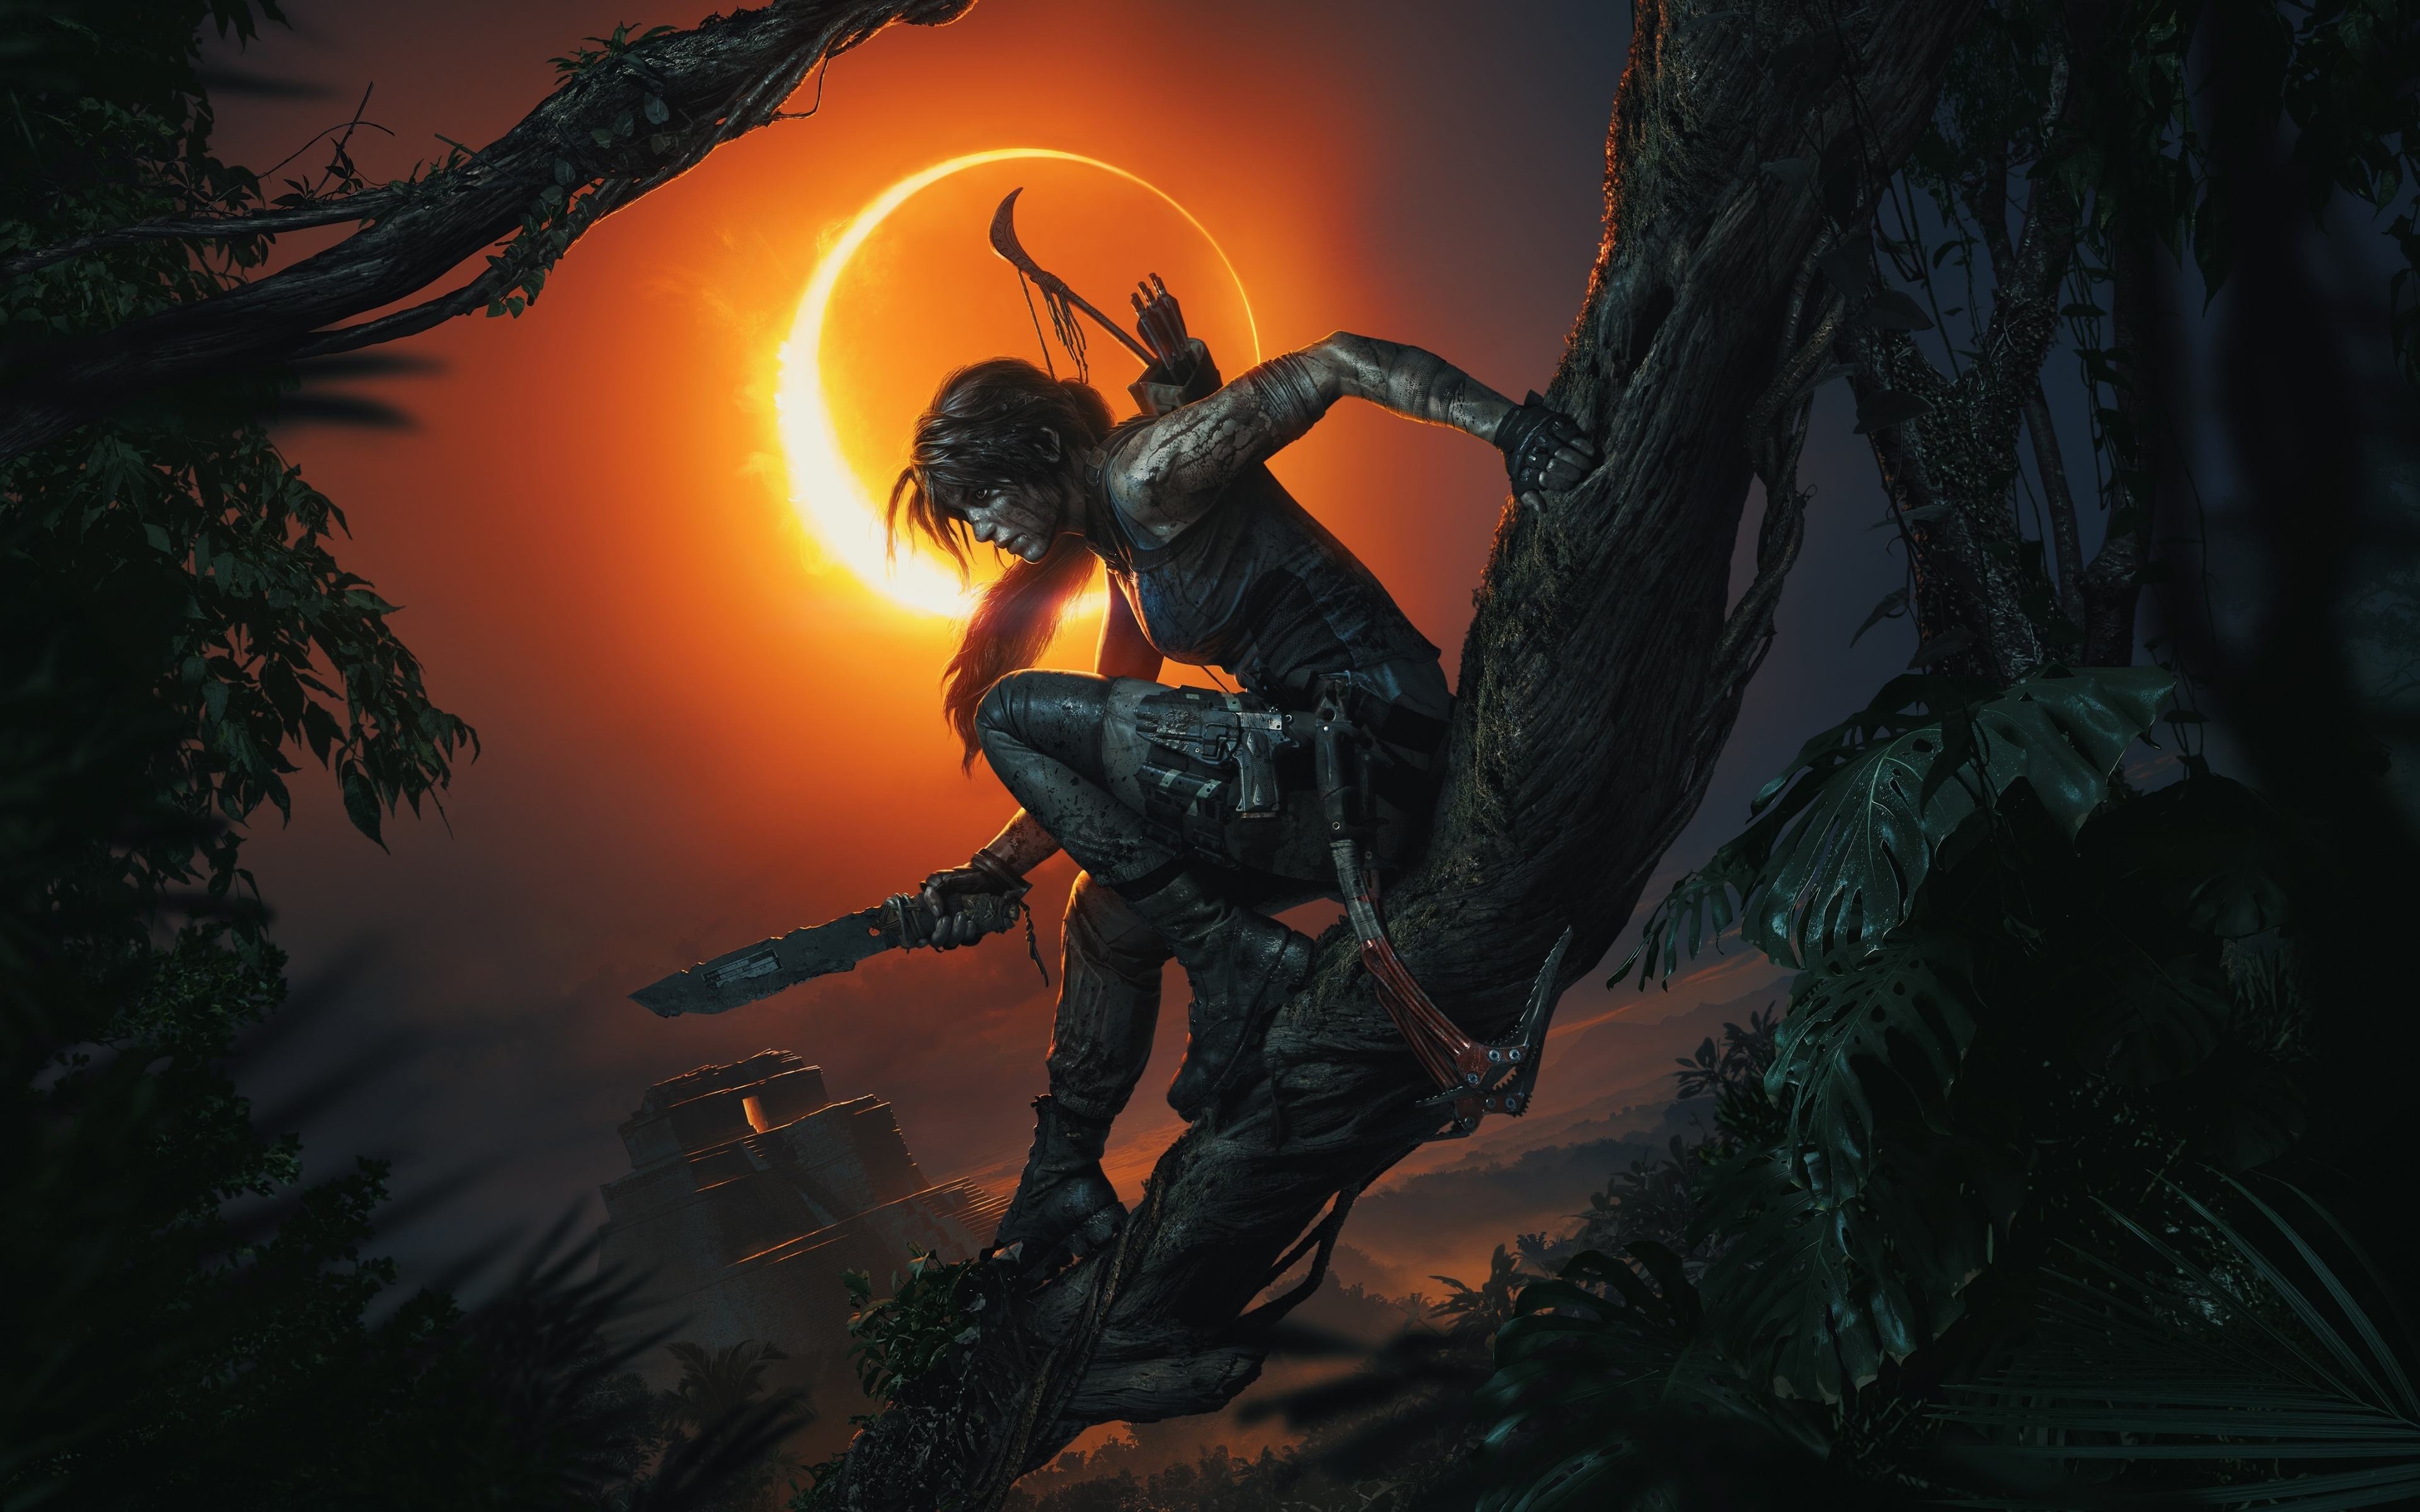 Download 3840x2400 Wallpaper Shadow Of The Tomb Raider